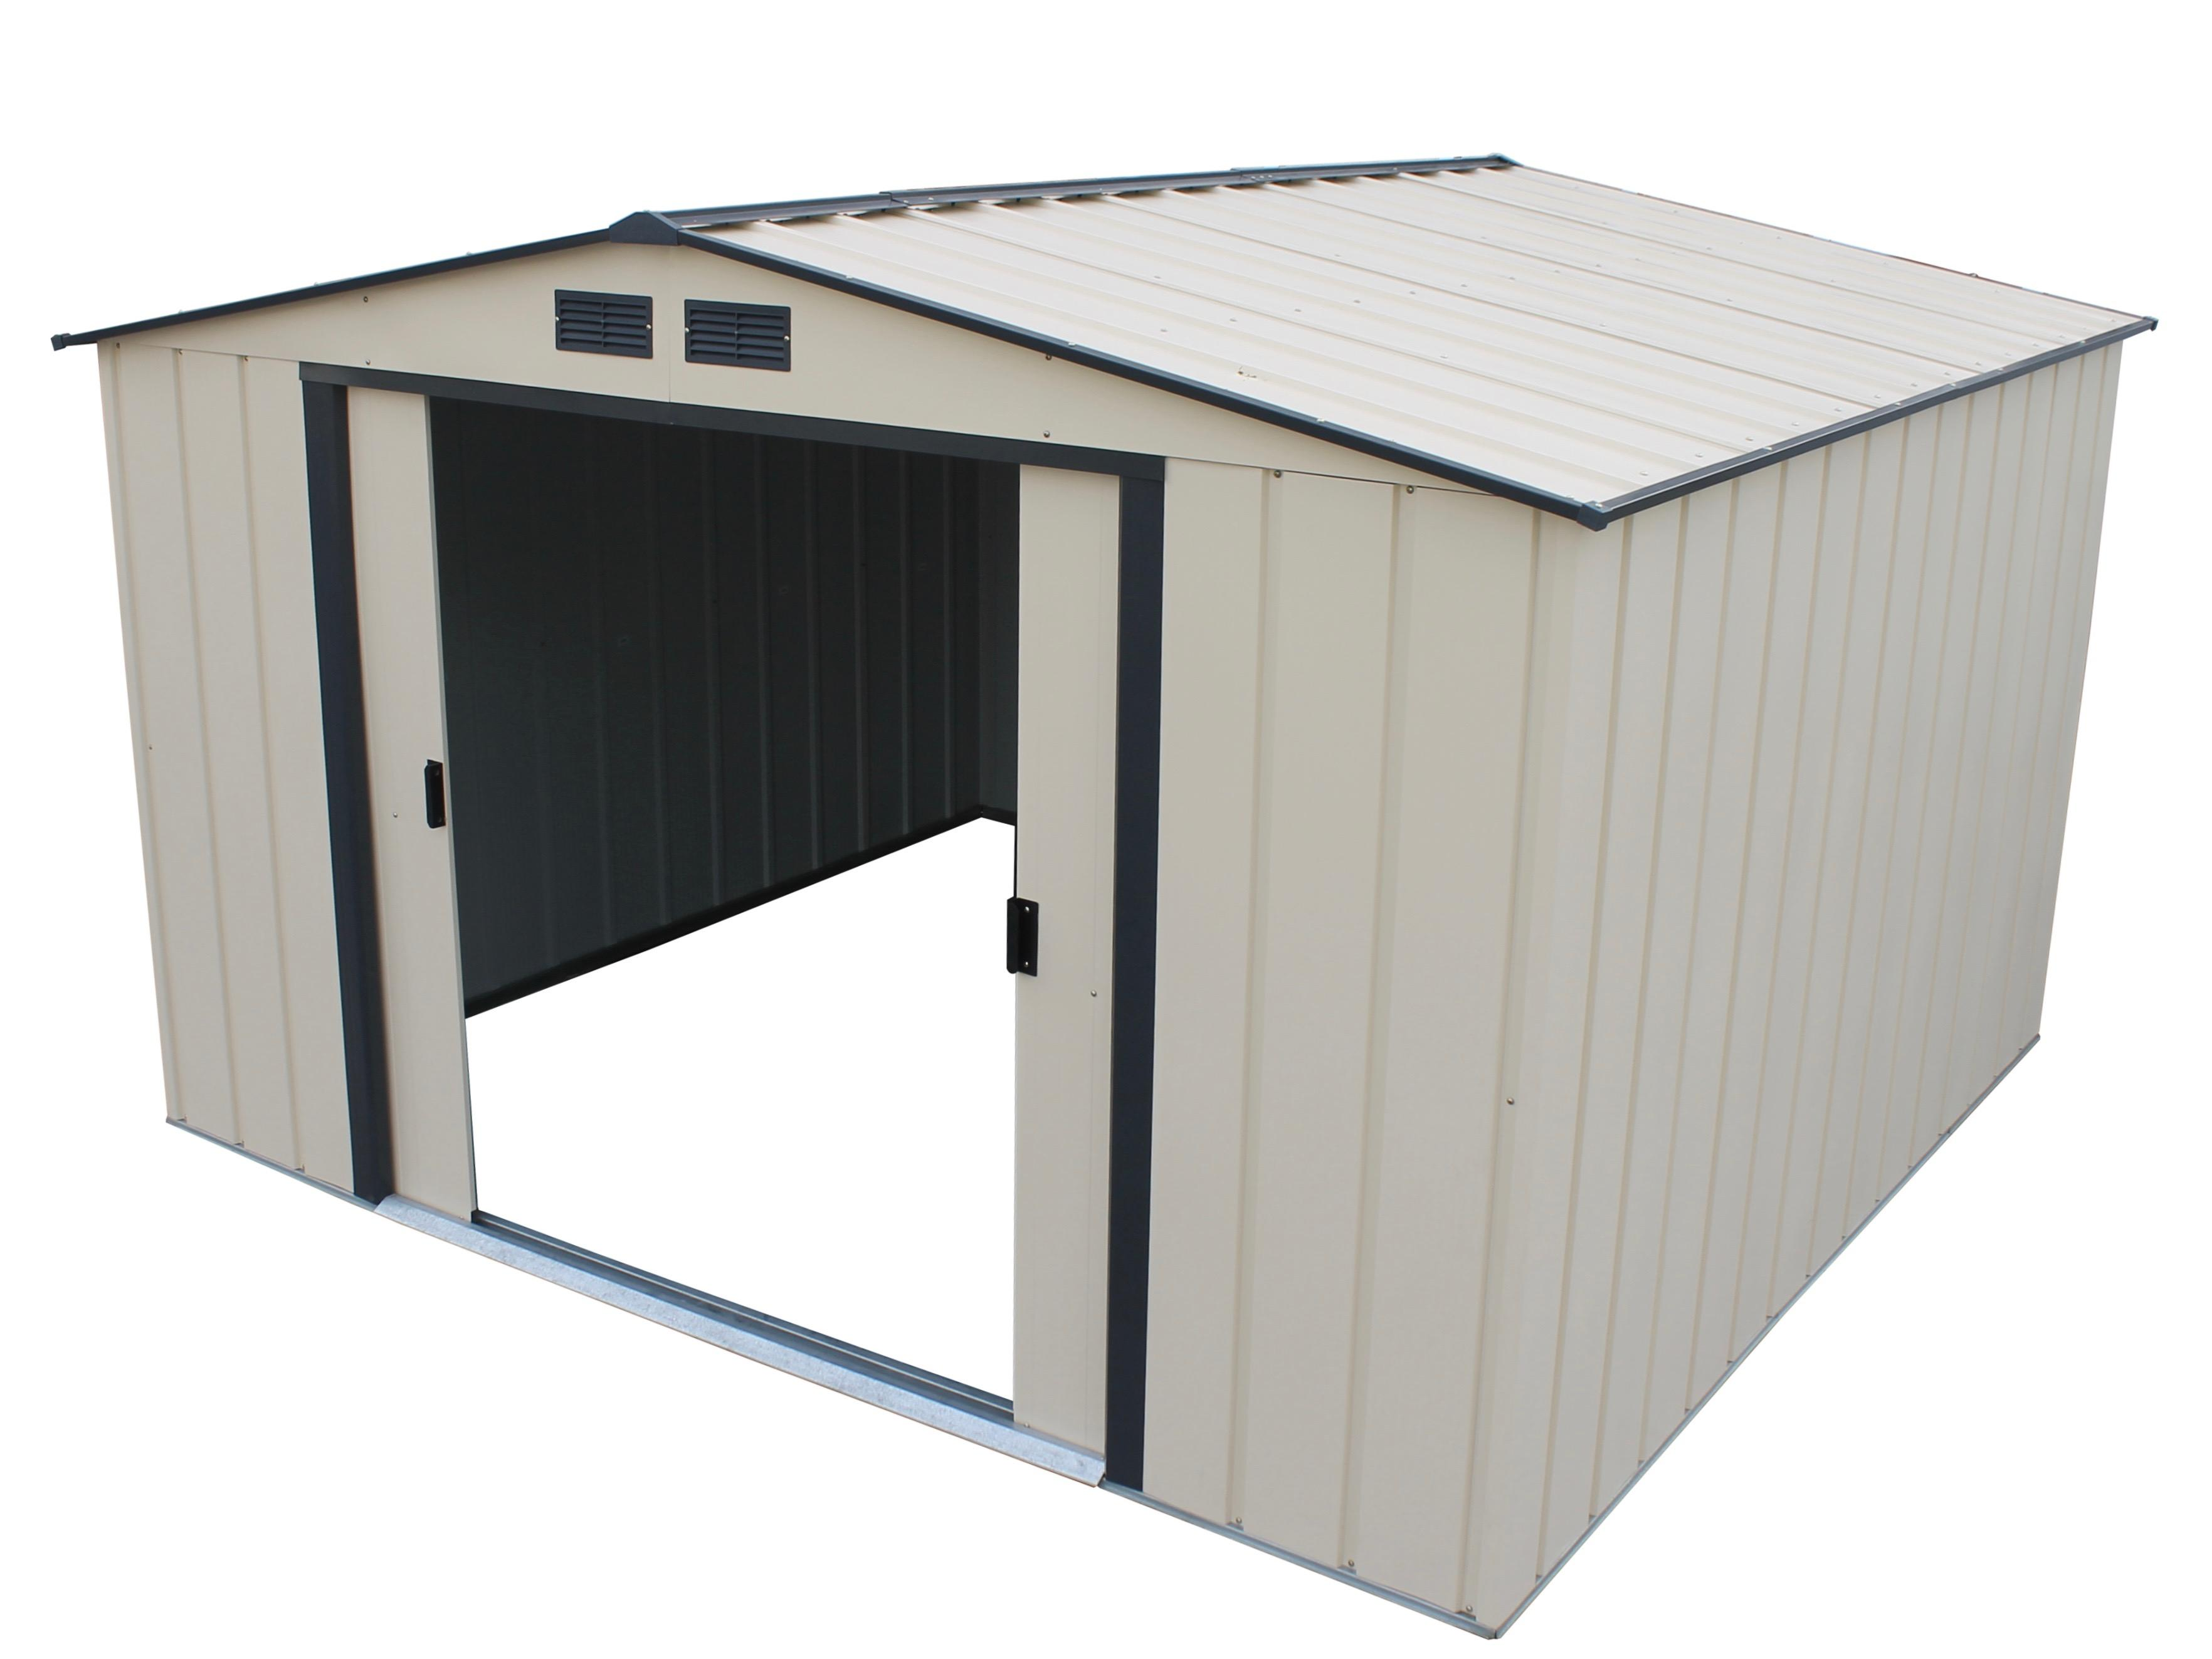 resin c sheds shed weather manor plastic all duramax keter outdoor x storage kp